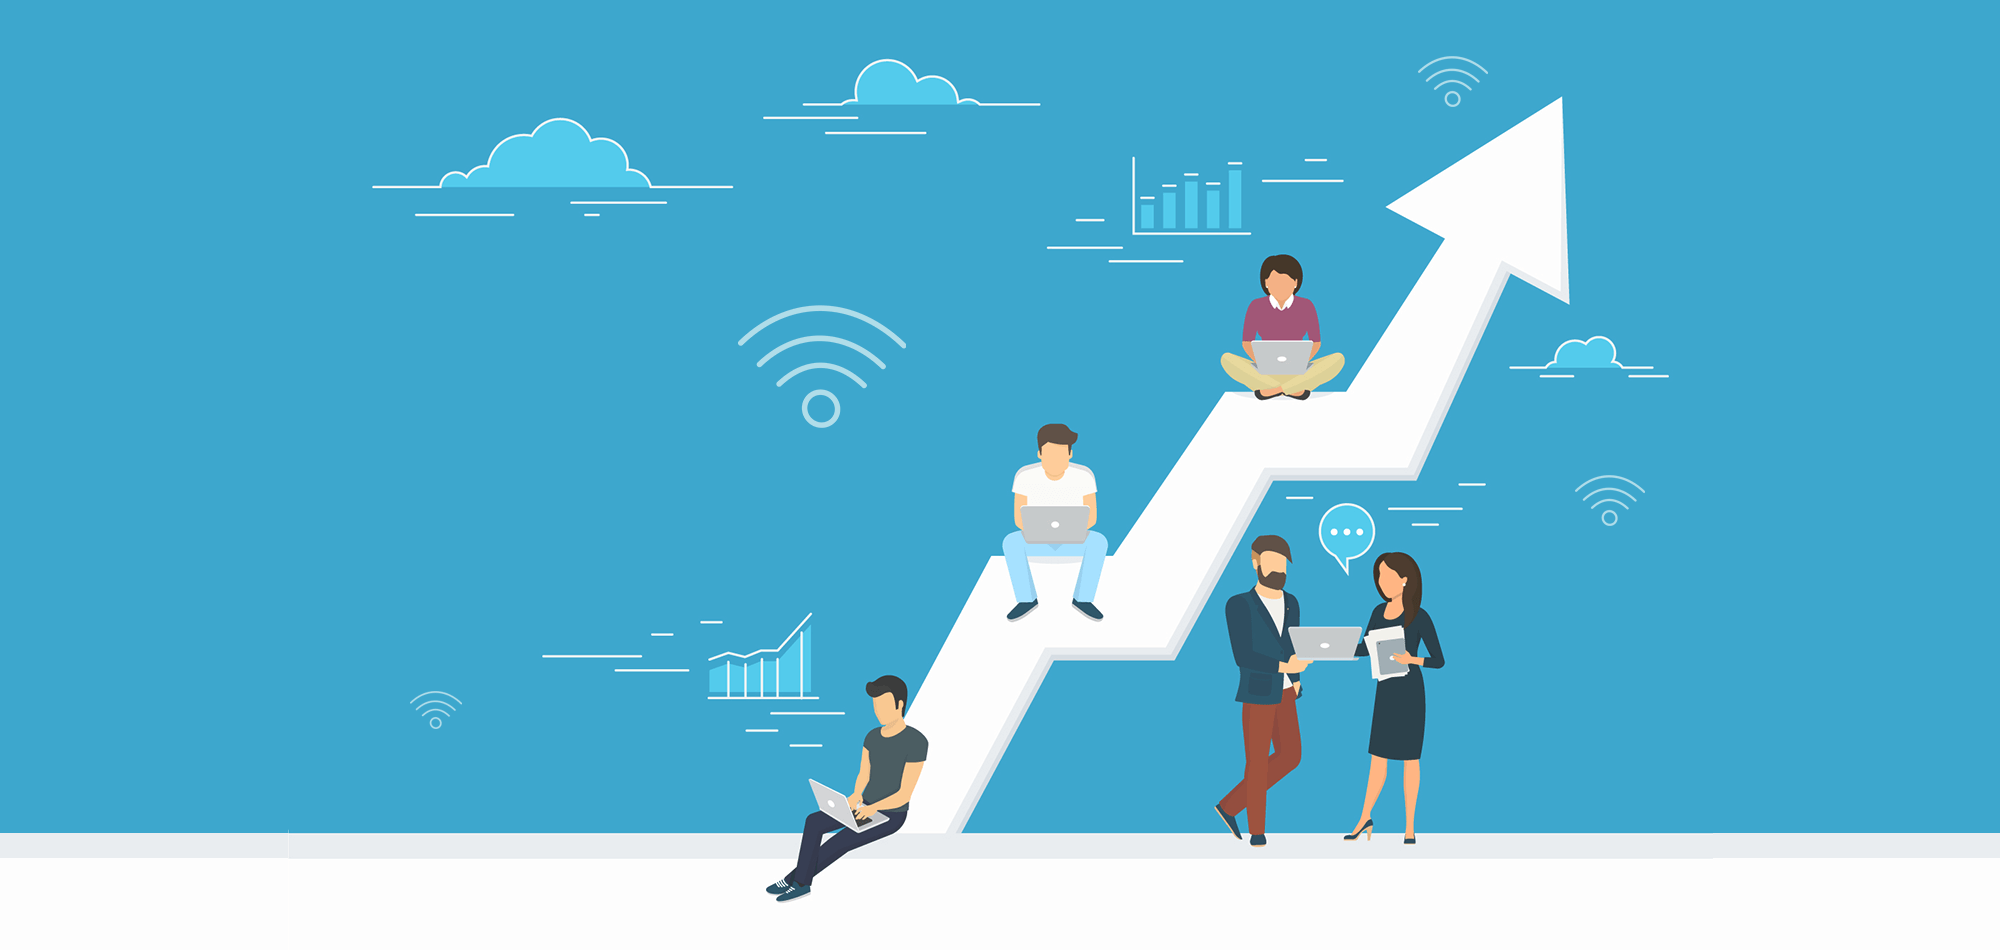 Wi-Fi Planning: Preparing for Growth in a Mobile-First World